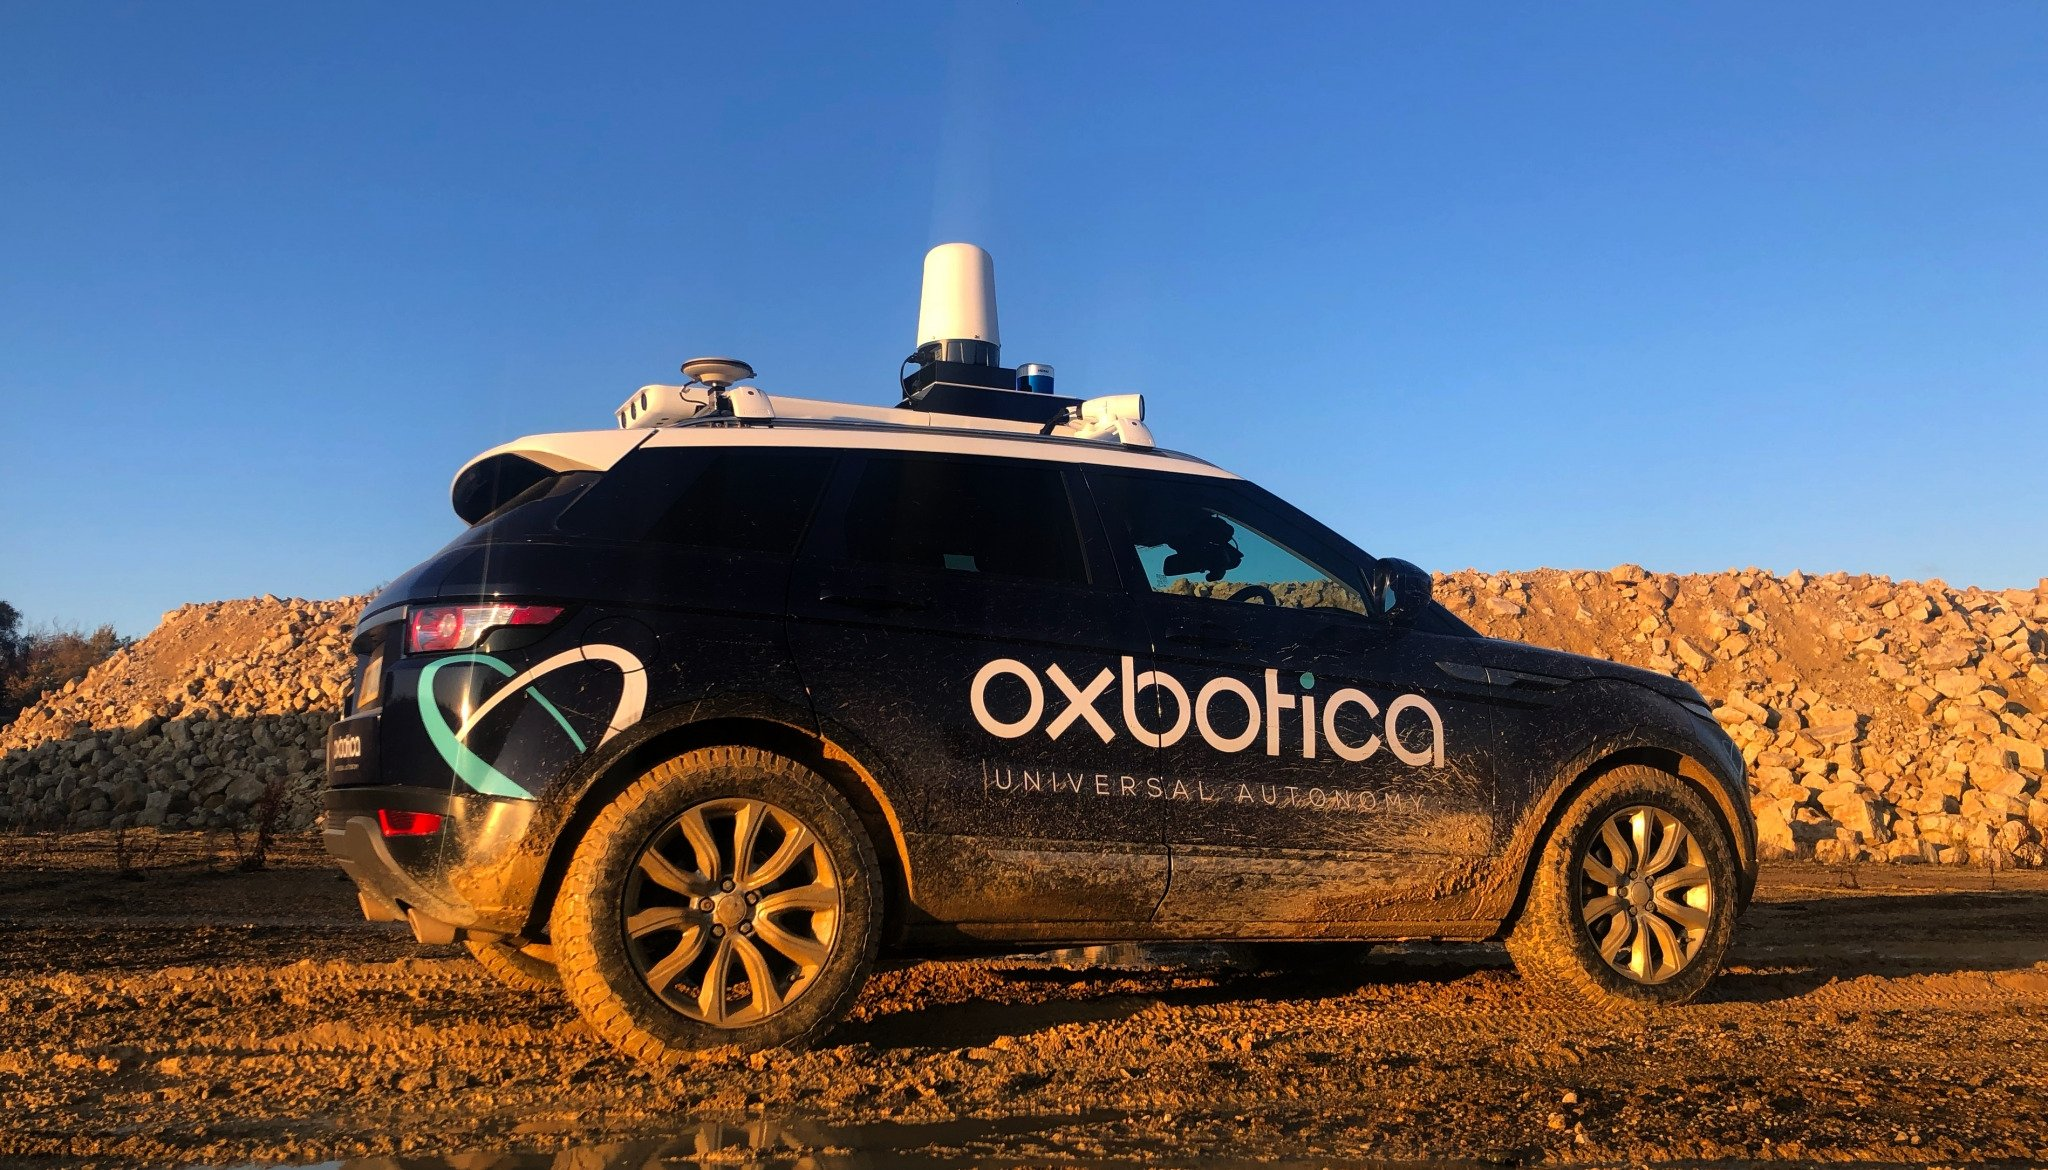 A vehicle equipped with Oxbotica's autonomous software is seen during a trial in a quarry in this undated photo. (Courtesy of Oxbotica)